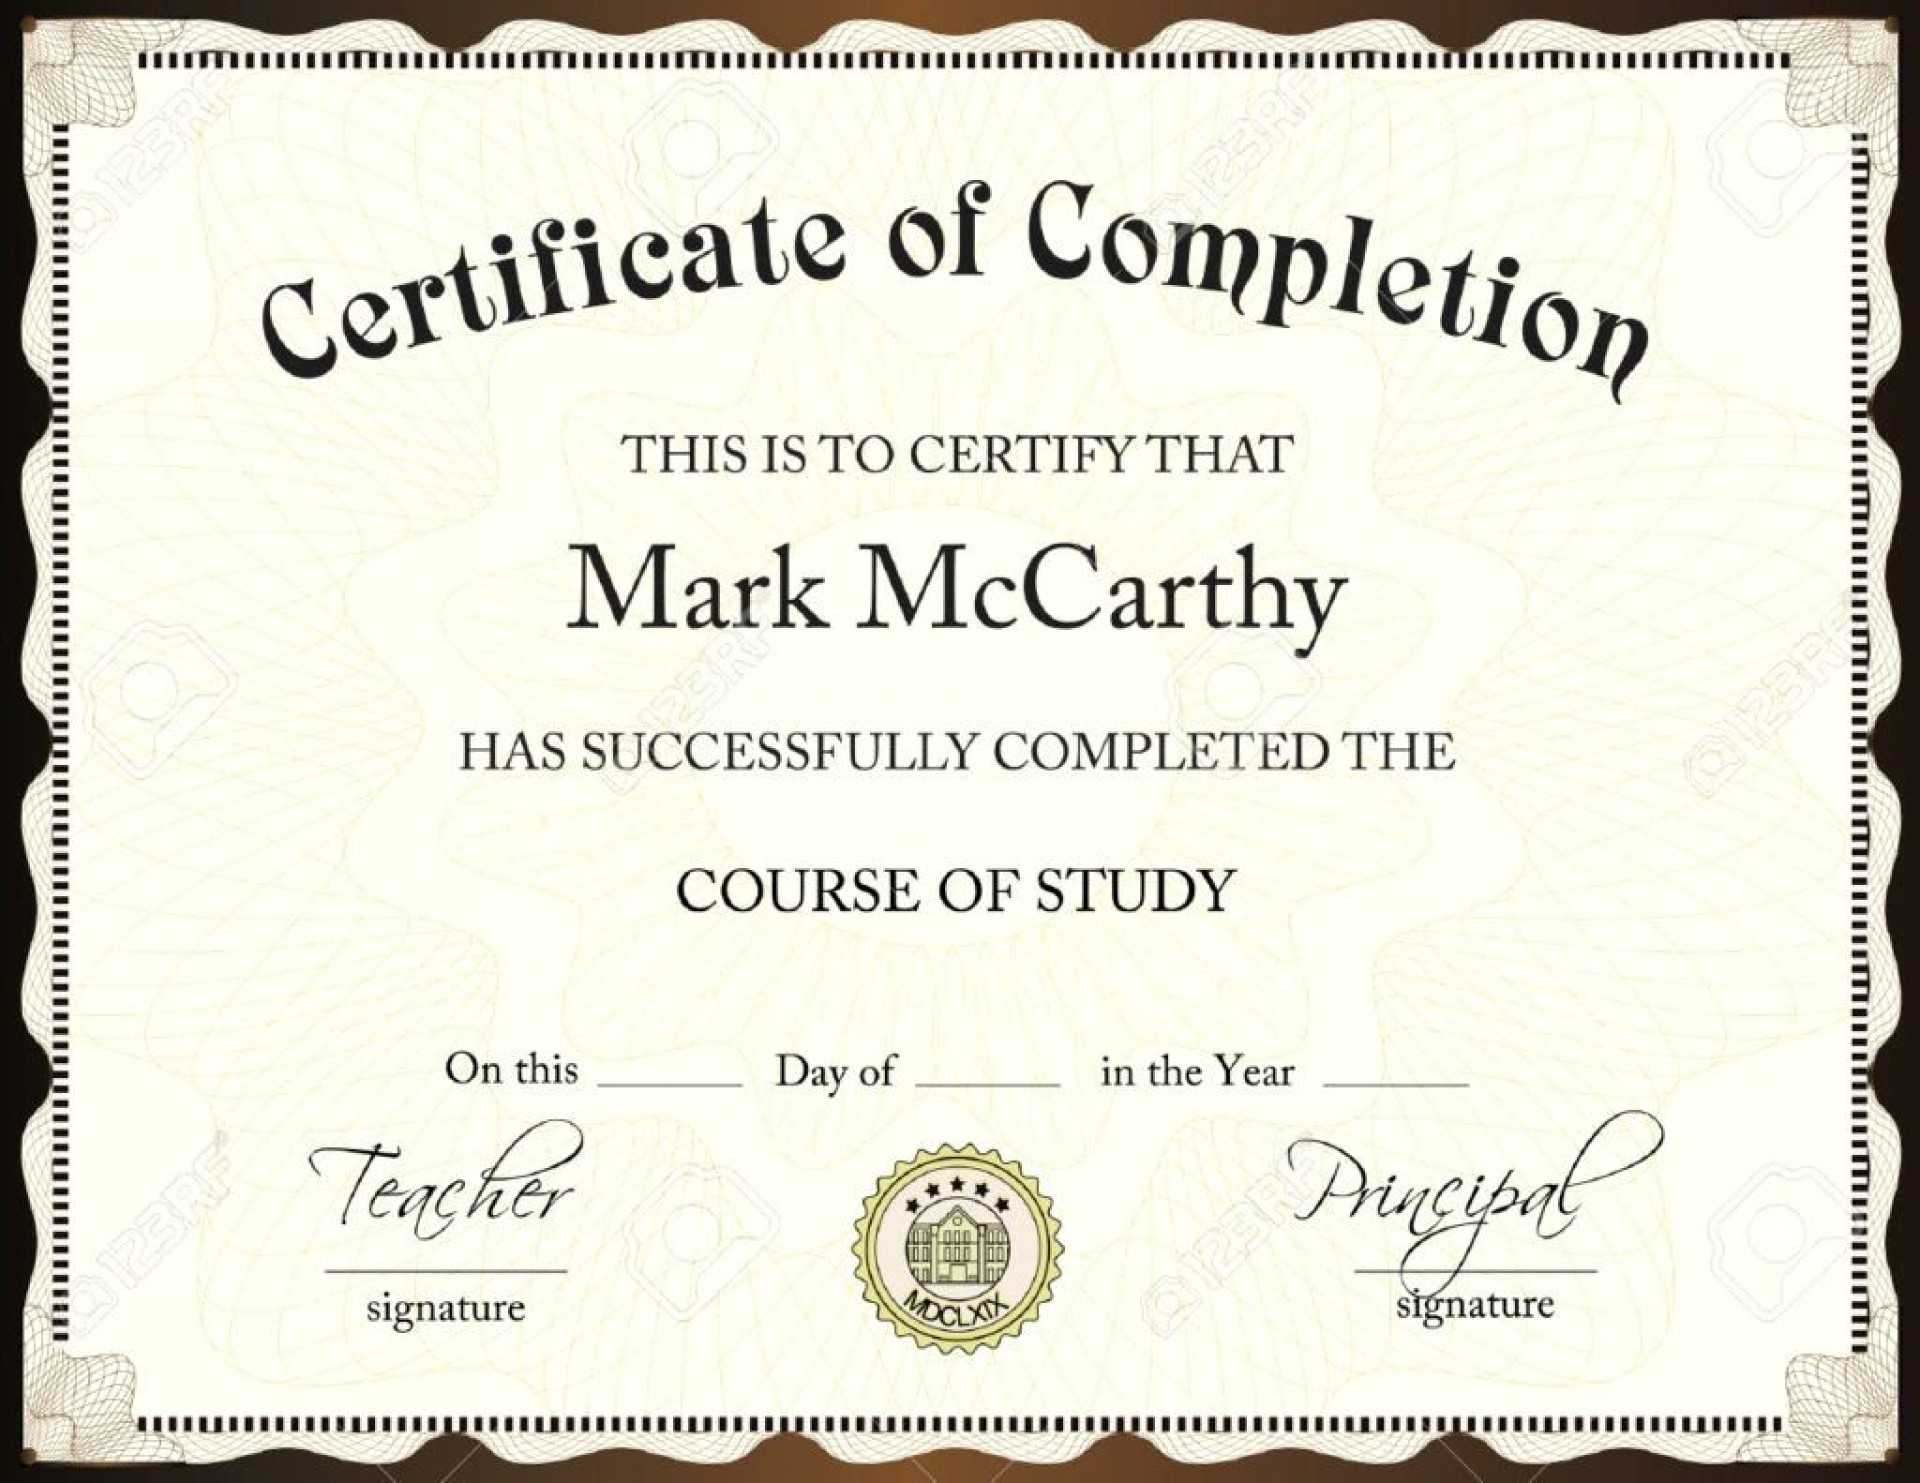 019 Certificate Of Completion Template Free Psd Best Throughout Army Certificate Of Completion Template